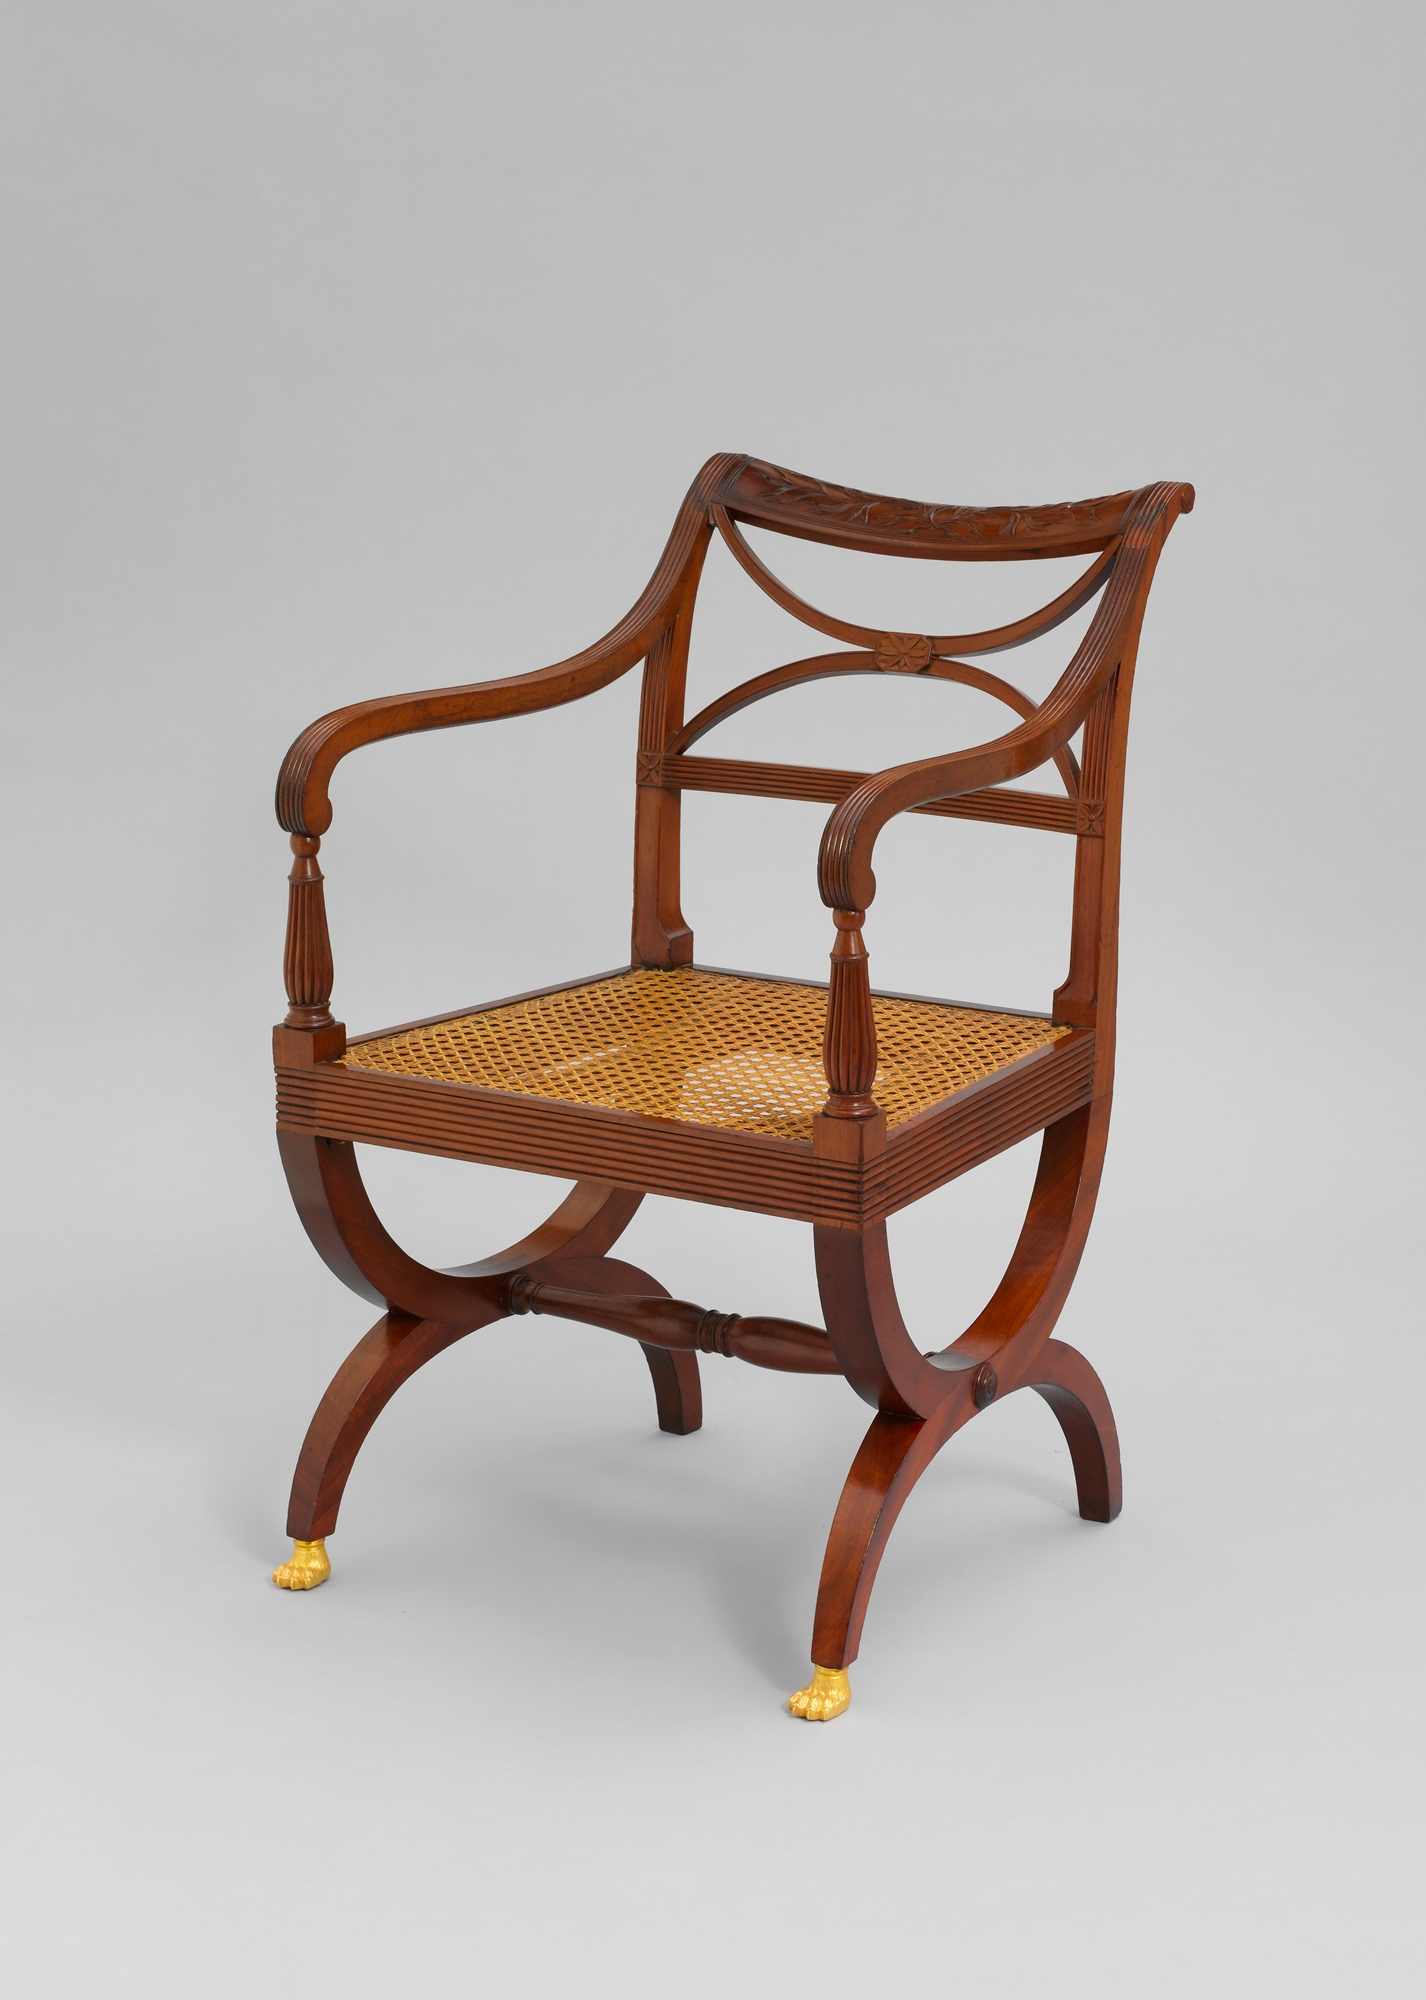 Attributed to Duncan Phyfe (American, born Scottish, 1770–1854).  Armchair . 1810–15. Made in New York, New York. United States. Mahogany and brass. 32 3/4 x 20 7/8 x 17 3/4 in. (83.2 x 53 x 45.1 cm). The Metropolitan Museum of Art. Gift of C. Ruxton Love Jr. 60.4.3.  https://www.metmuseum.org/art/collection/search/268